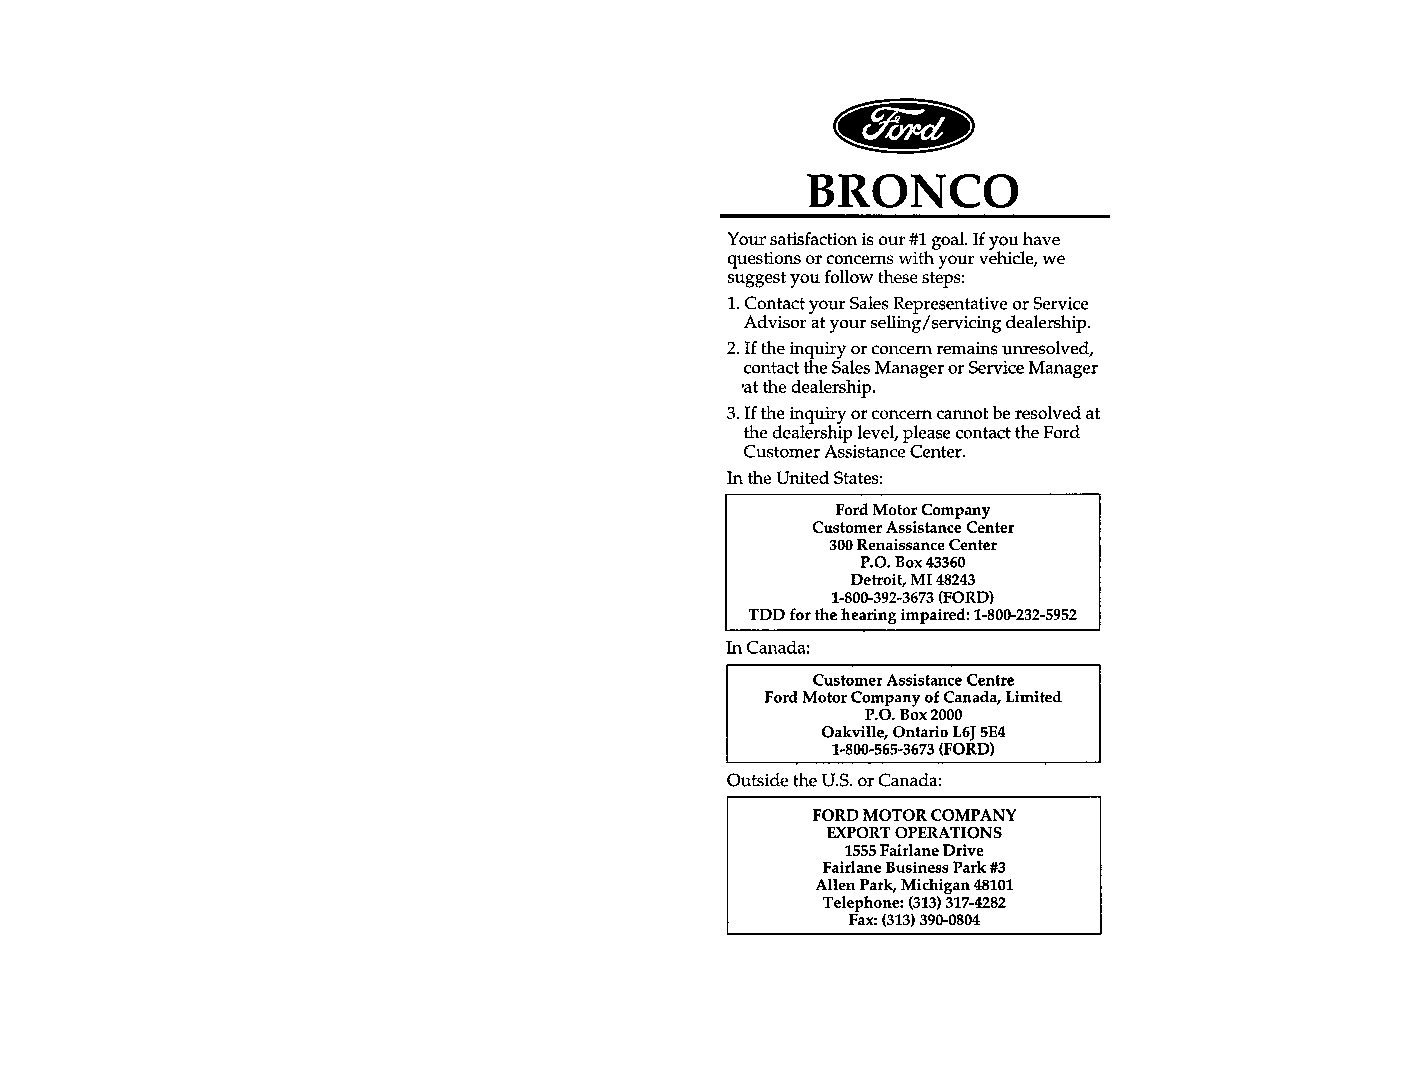 1988 Ford Bronco Owner's Manual Owner's Manual